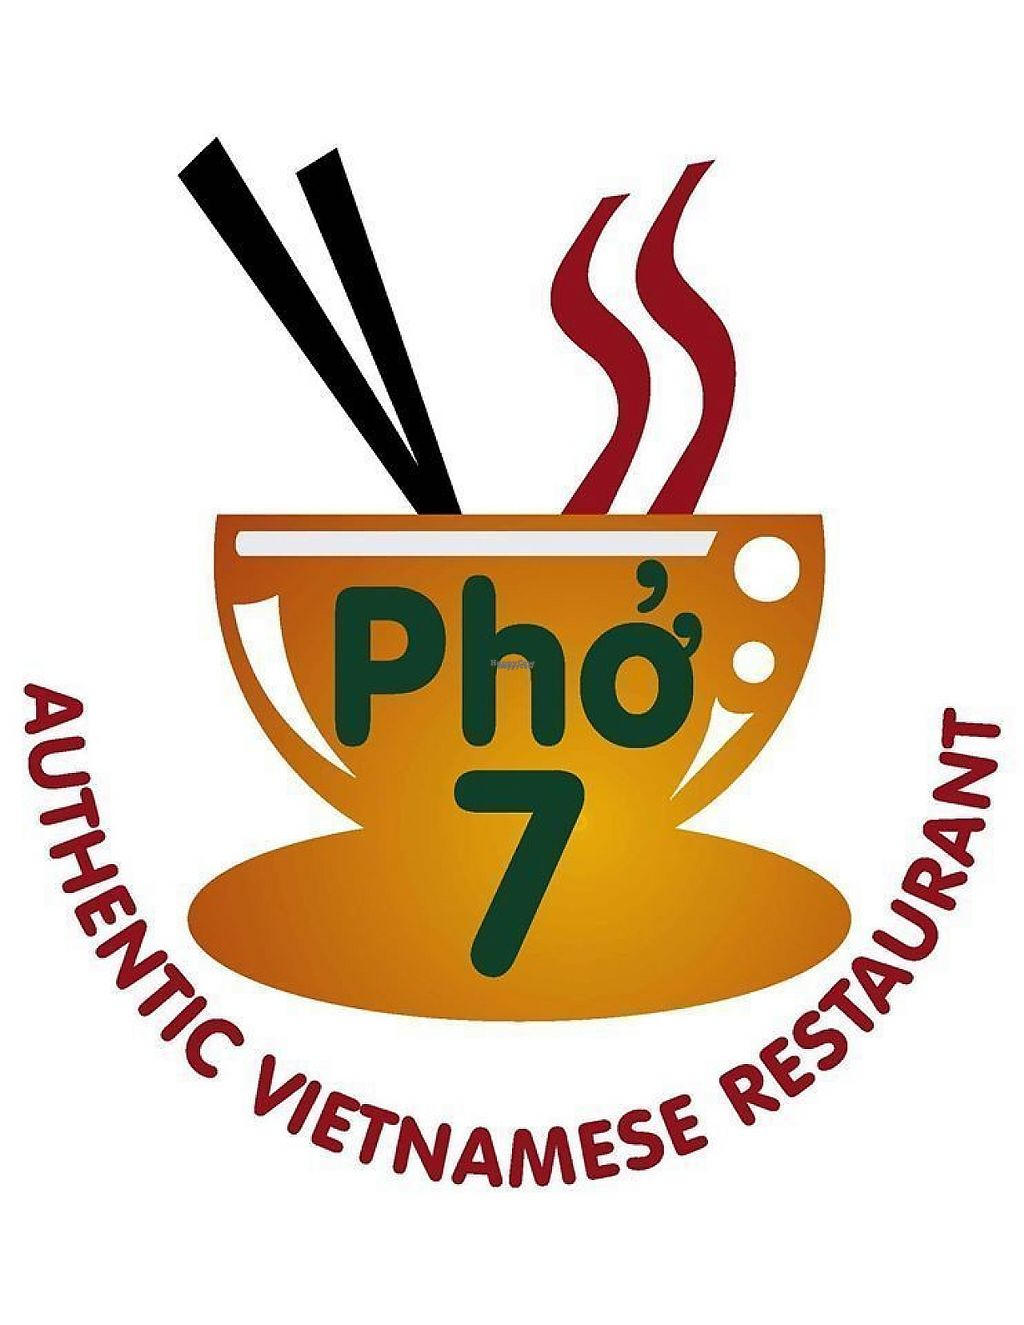 """Photo of Pho 7  by <a href=""""/members/profile/community5"""">community5</a> <br/>Pho 7 <br/> April 6, 2017  - <a href='/contact/abuse/image/89967/245293'>Report</a>"""